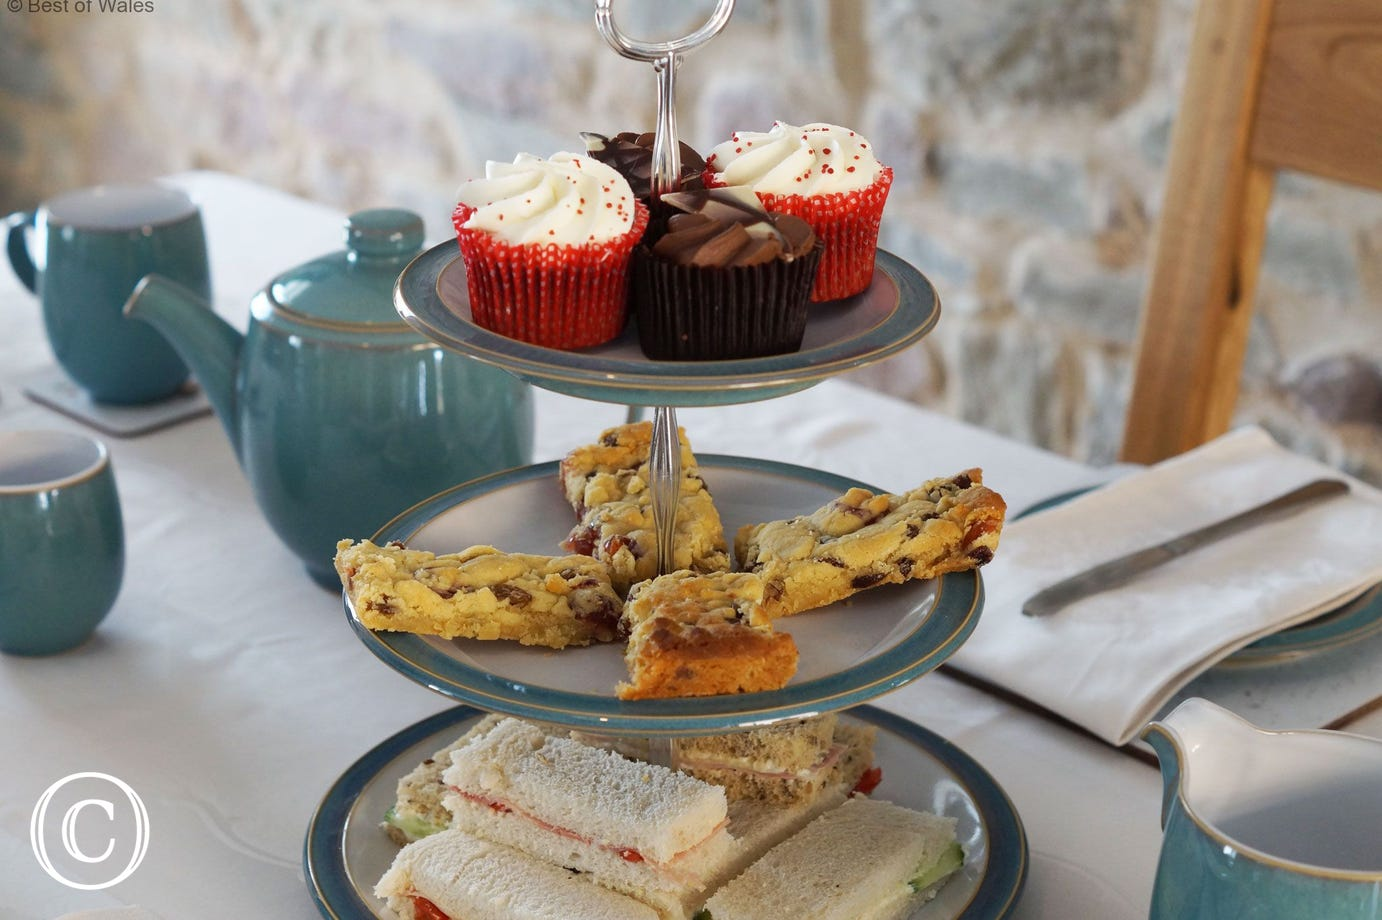 Enjoy afternoon tea at Llwynrhosser